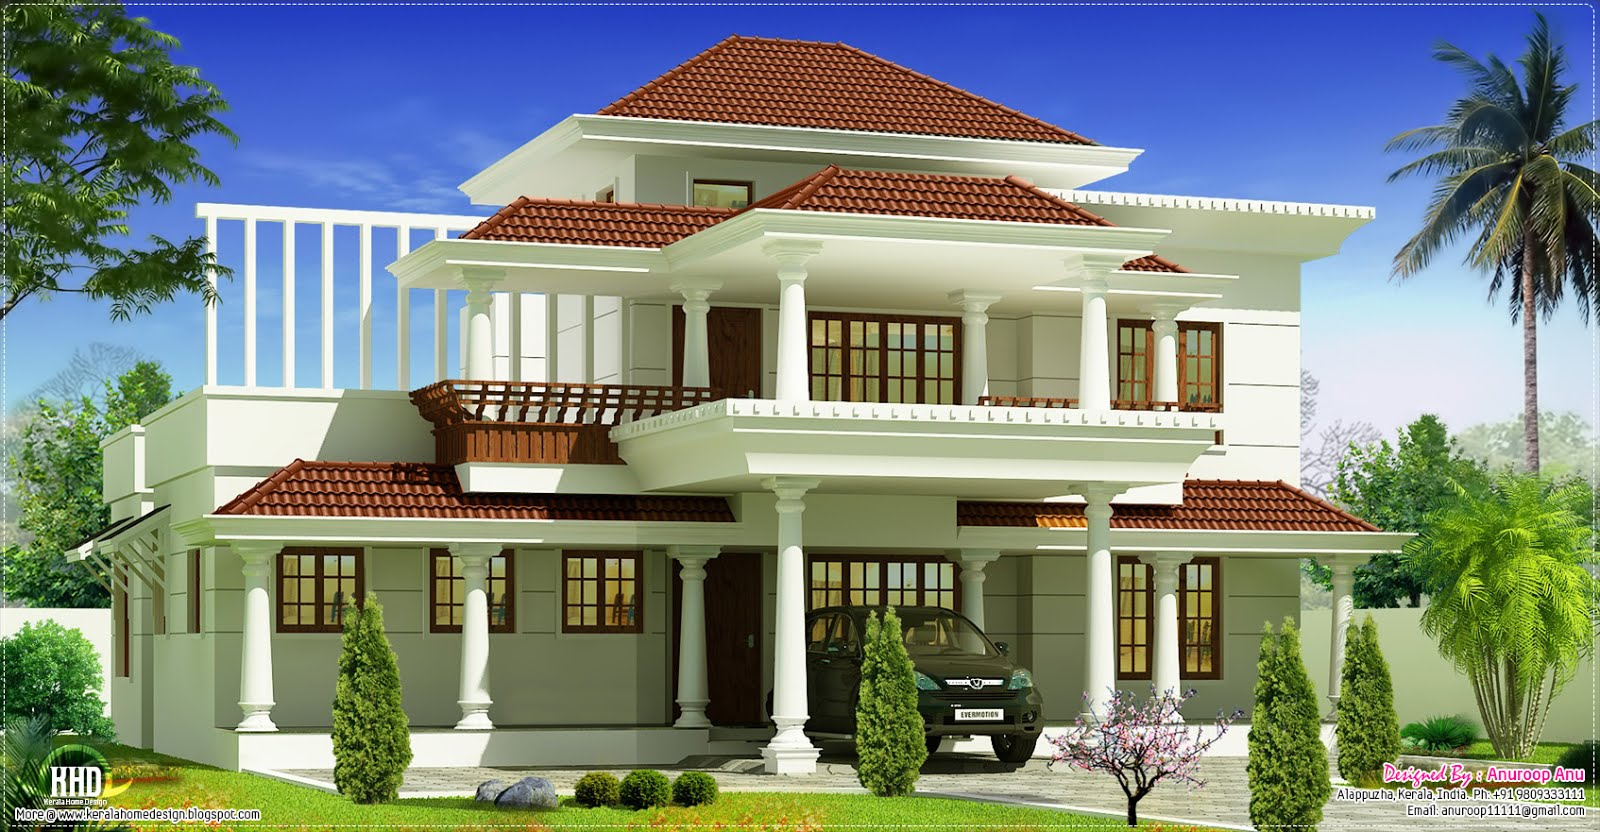 January 2013 kerala home design and floor plans for Kerala model house photos with details